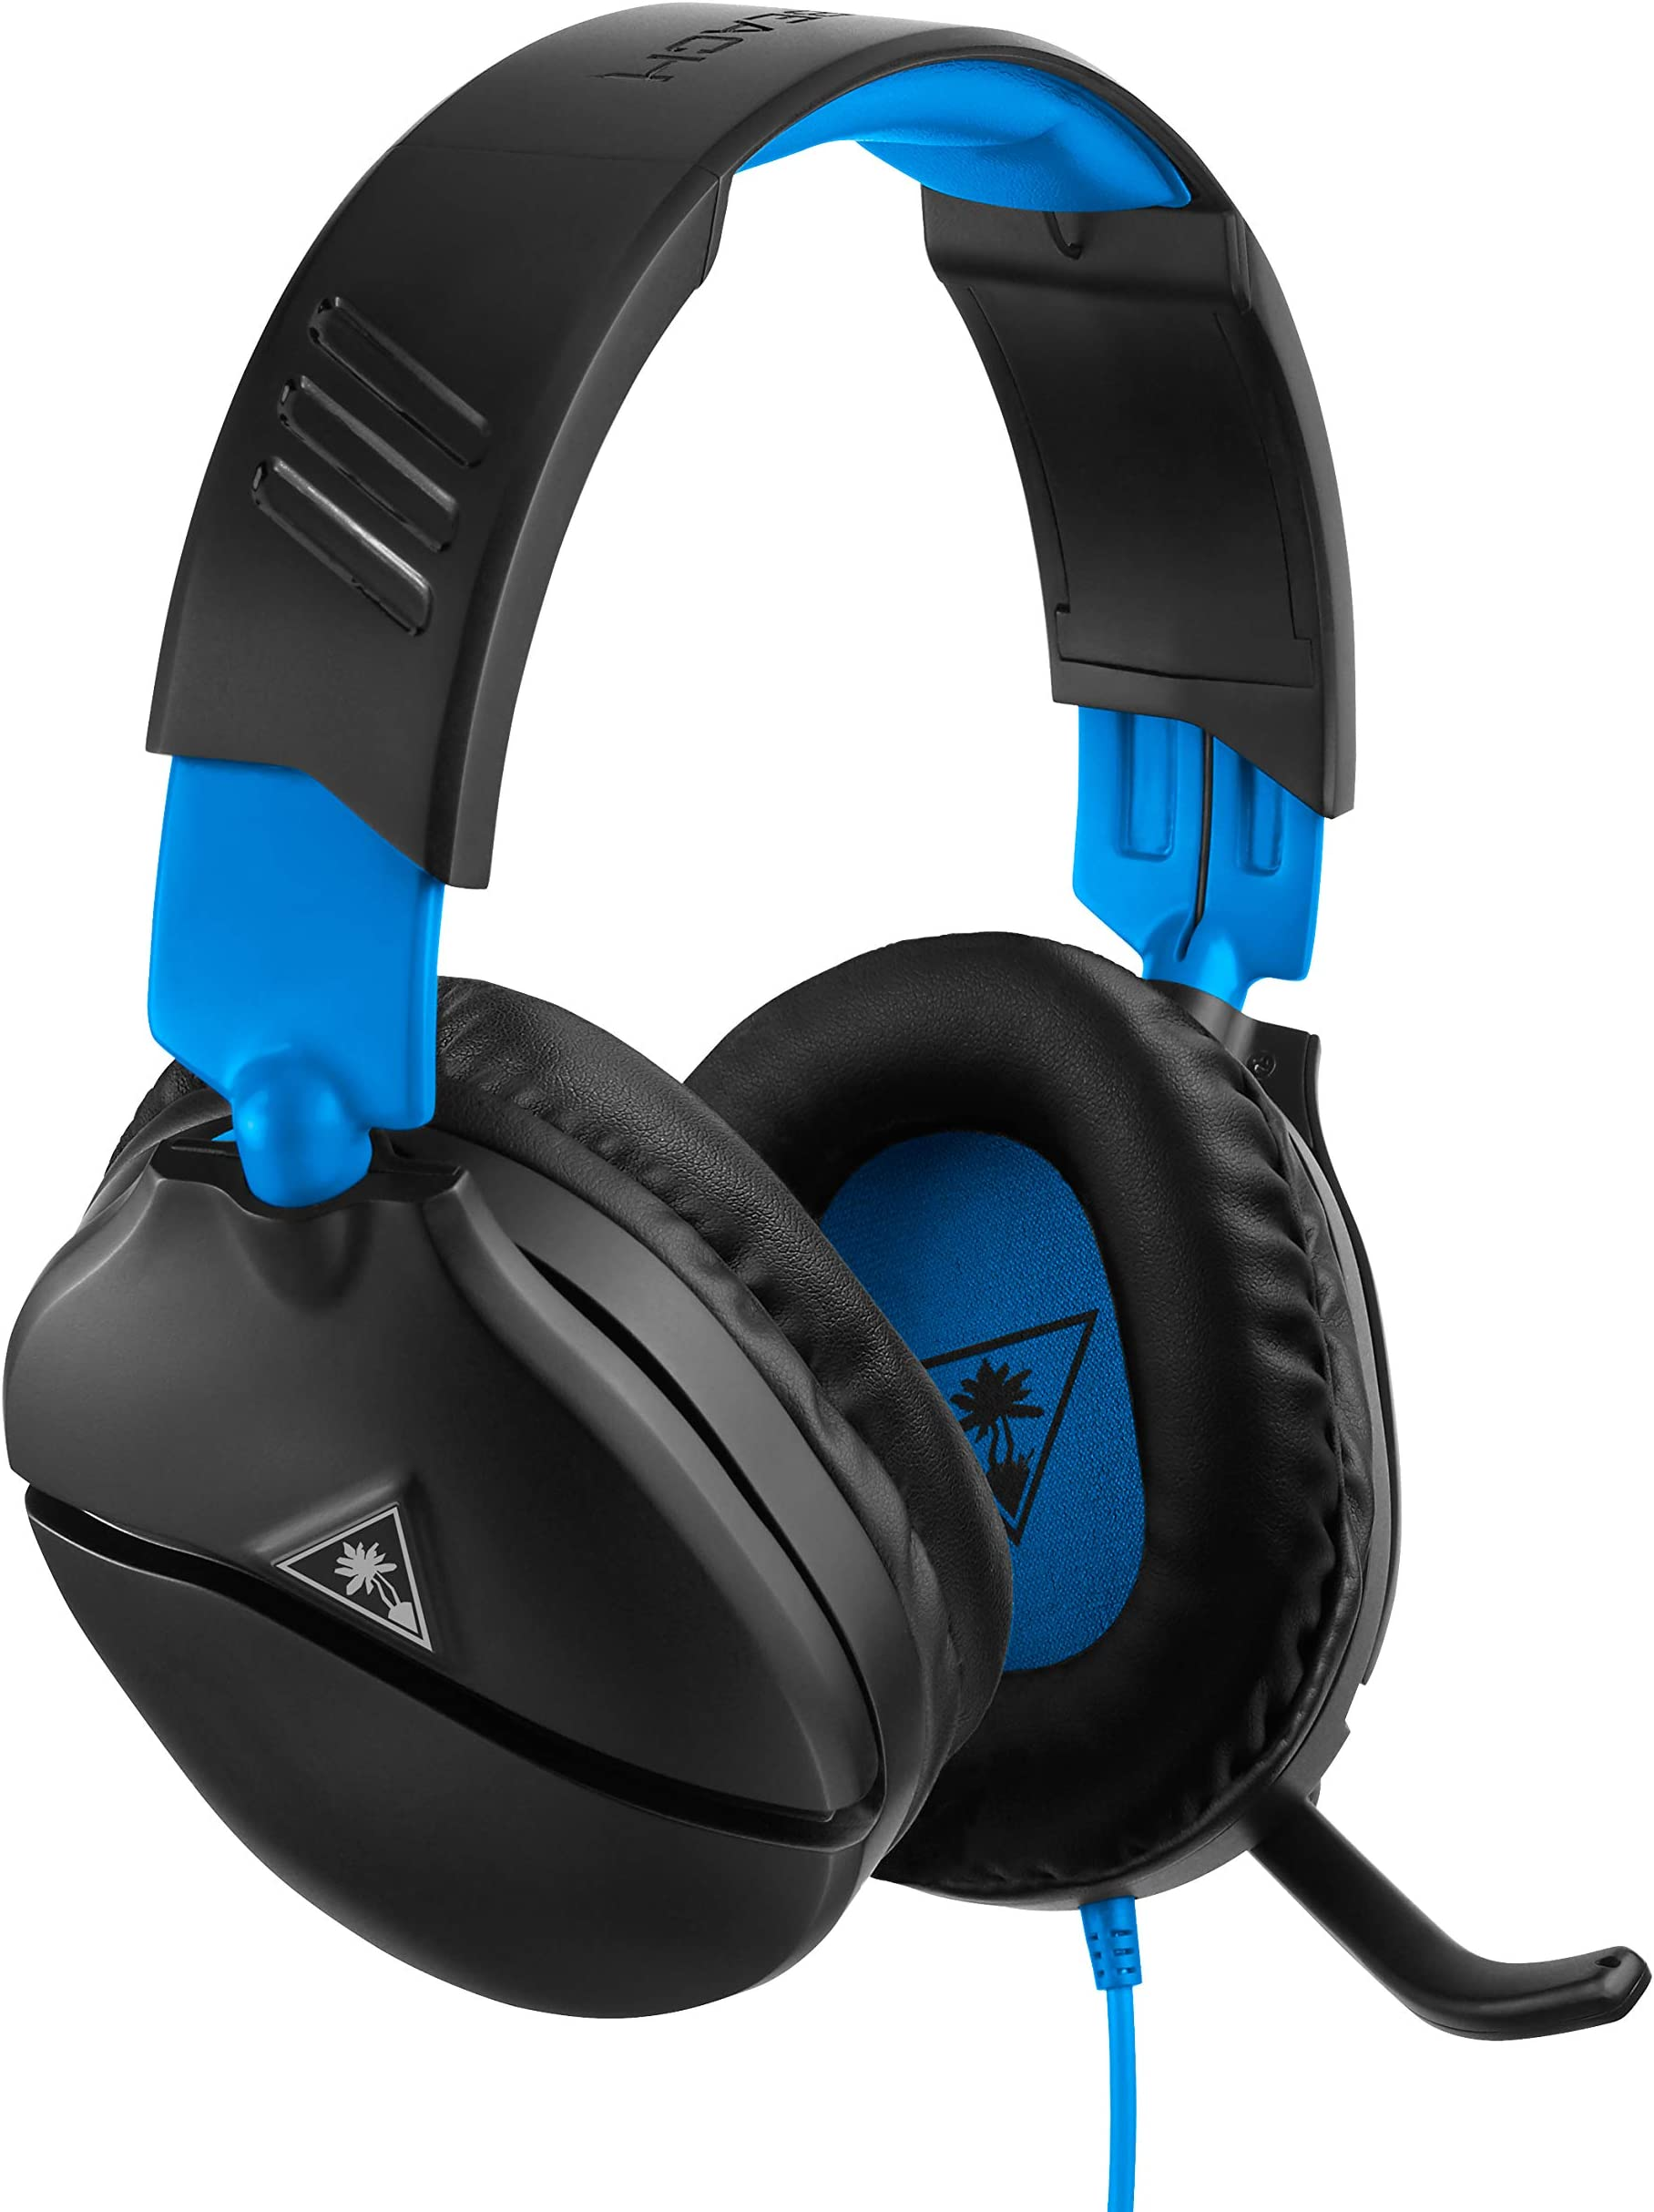 auriculares gaming Turtle Beach Recon 70 para playstation 4